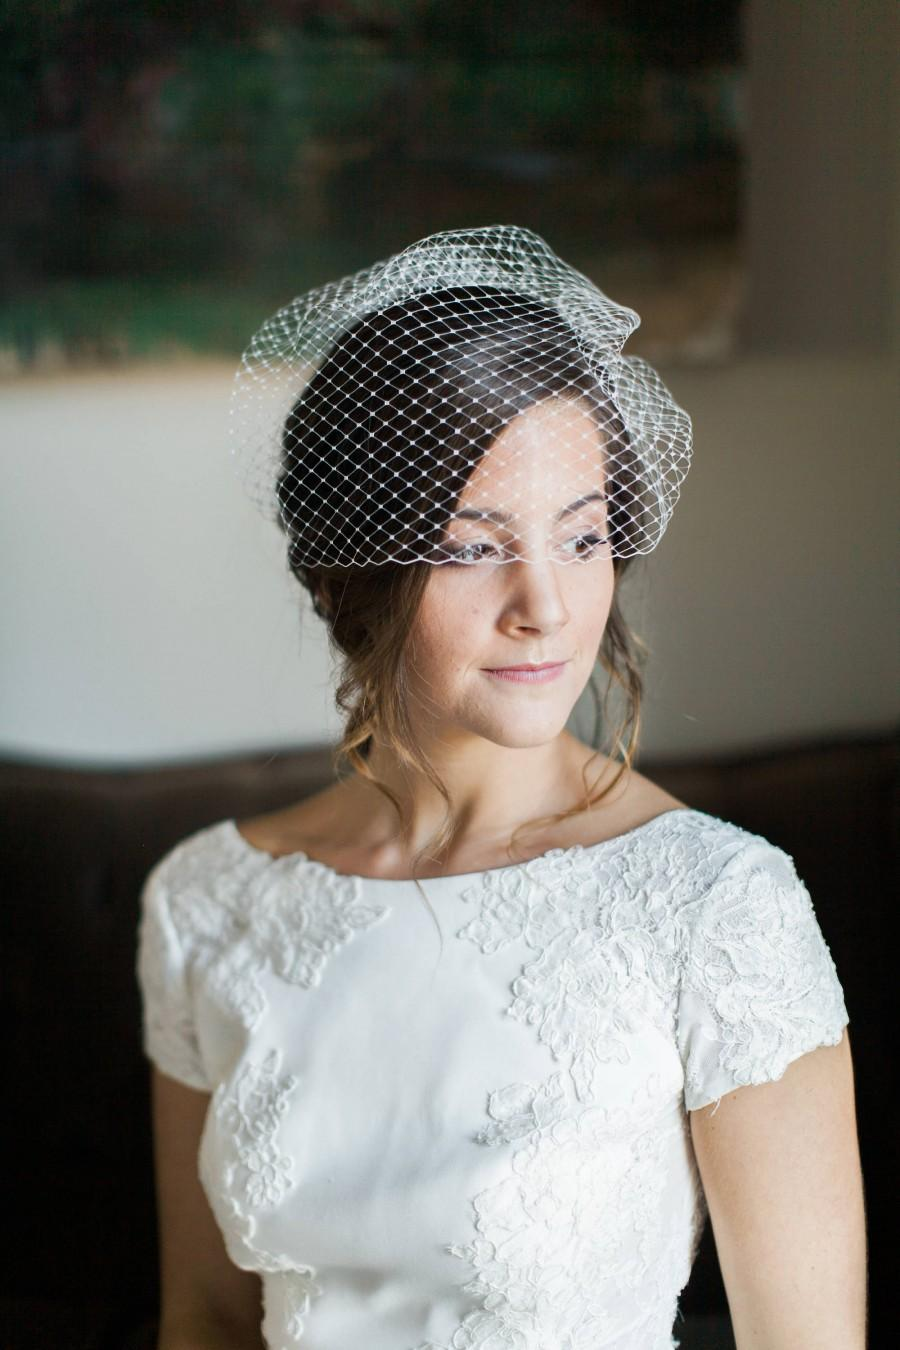 Wedding - Birdcage Veil, Short Veil, Wedding Veil, Blusher Veil, Voilette, Wedding Headpiece, Bridal Headpiece, Bridal Veil- Style 204- Anabelle